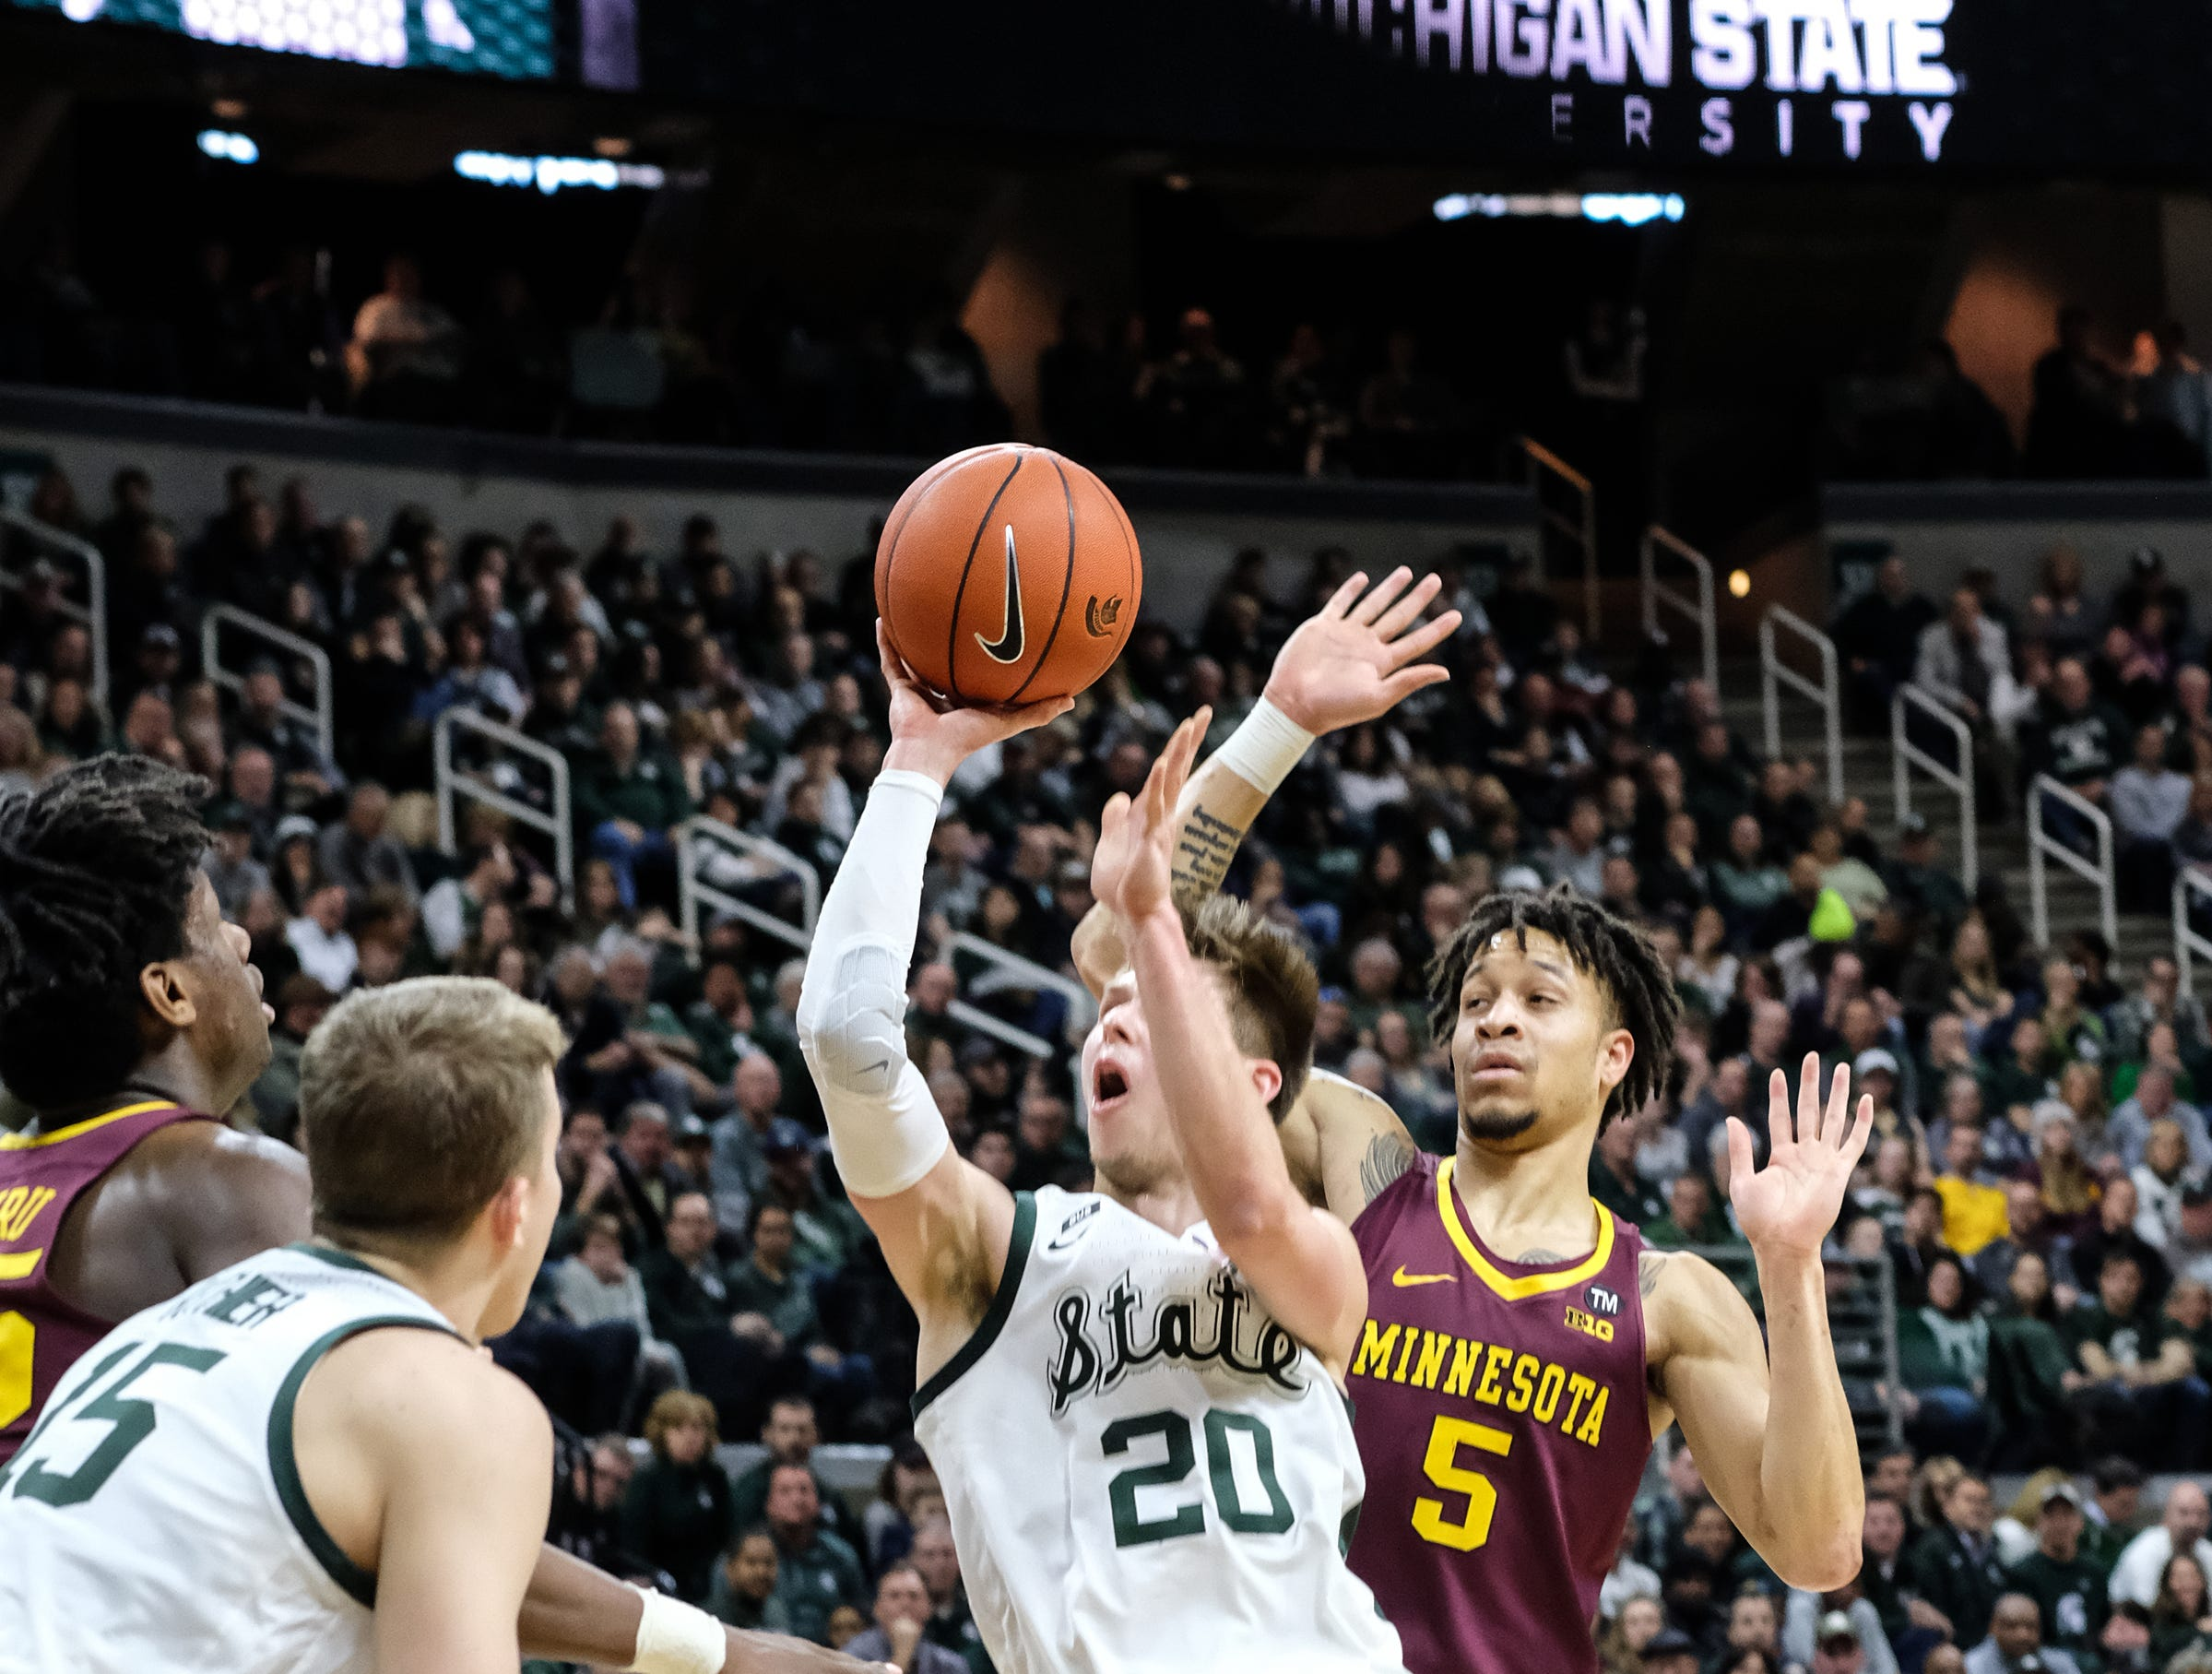 MSU's Matt McQuaid (20) shoots against Minnesota Saturday, Feb. 9, 2019. MSU won 79-55.